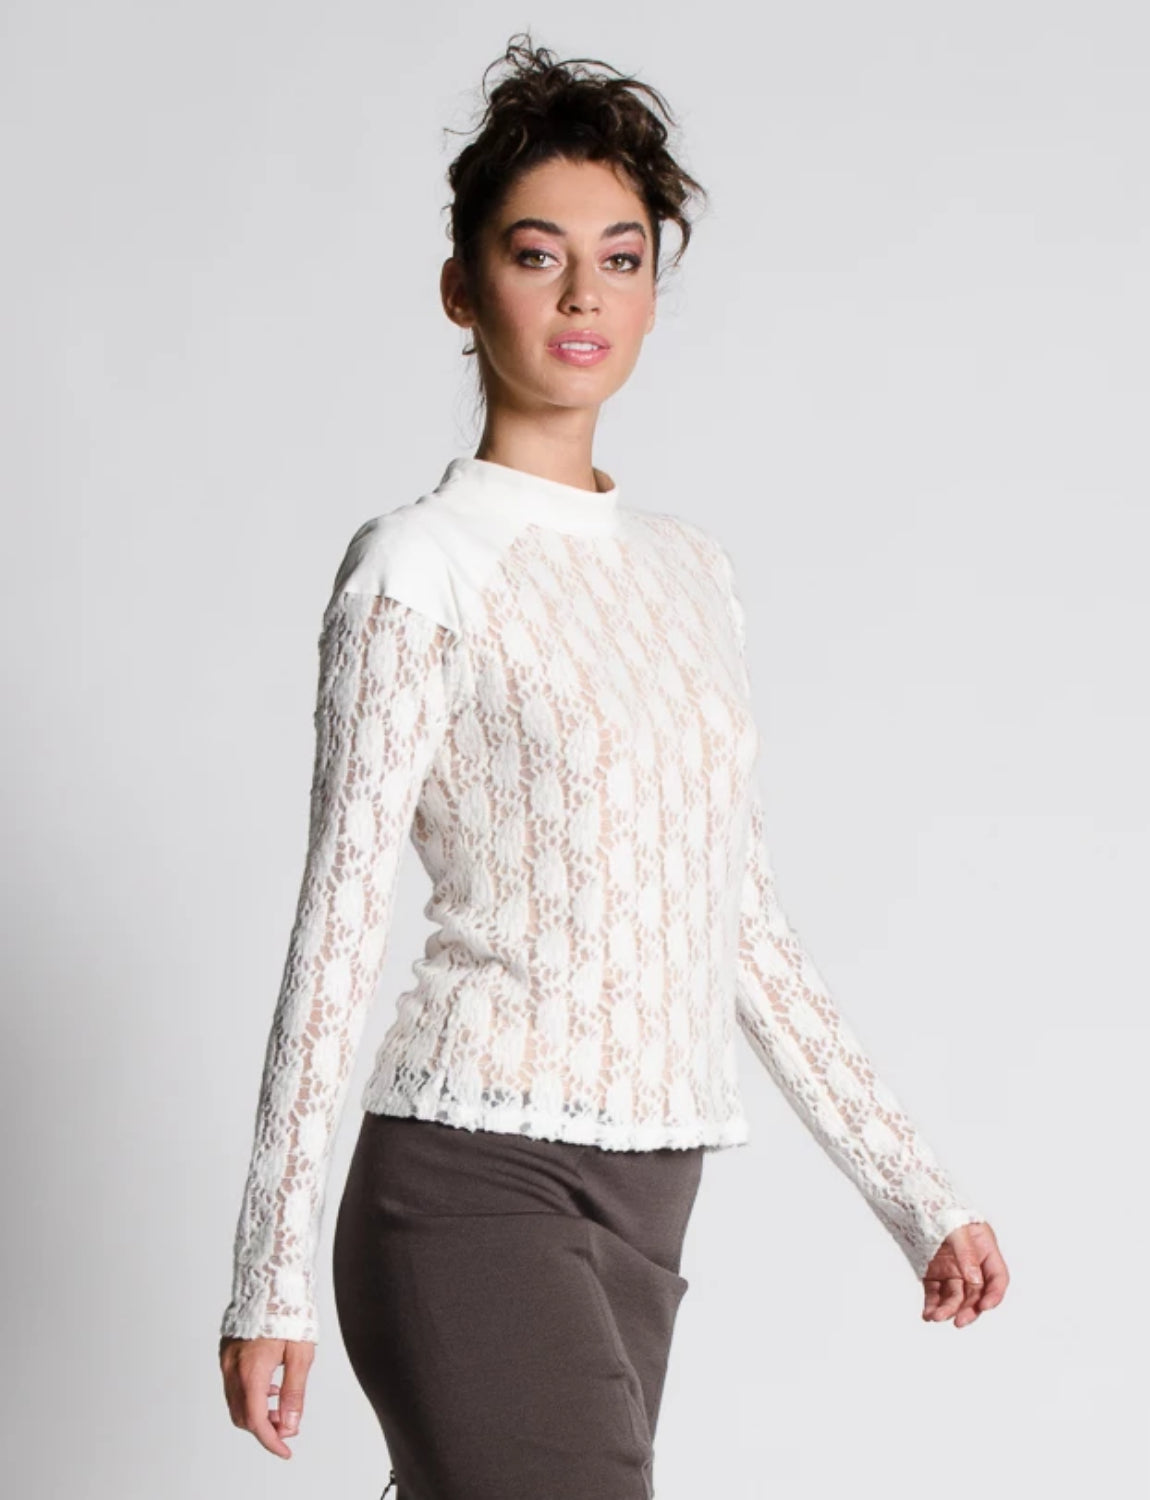 SCARLETTE Sweater Lace Knit Top